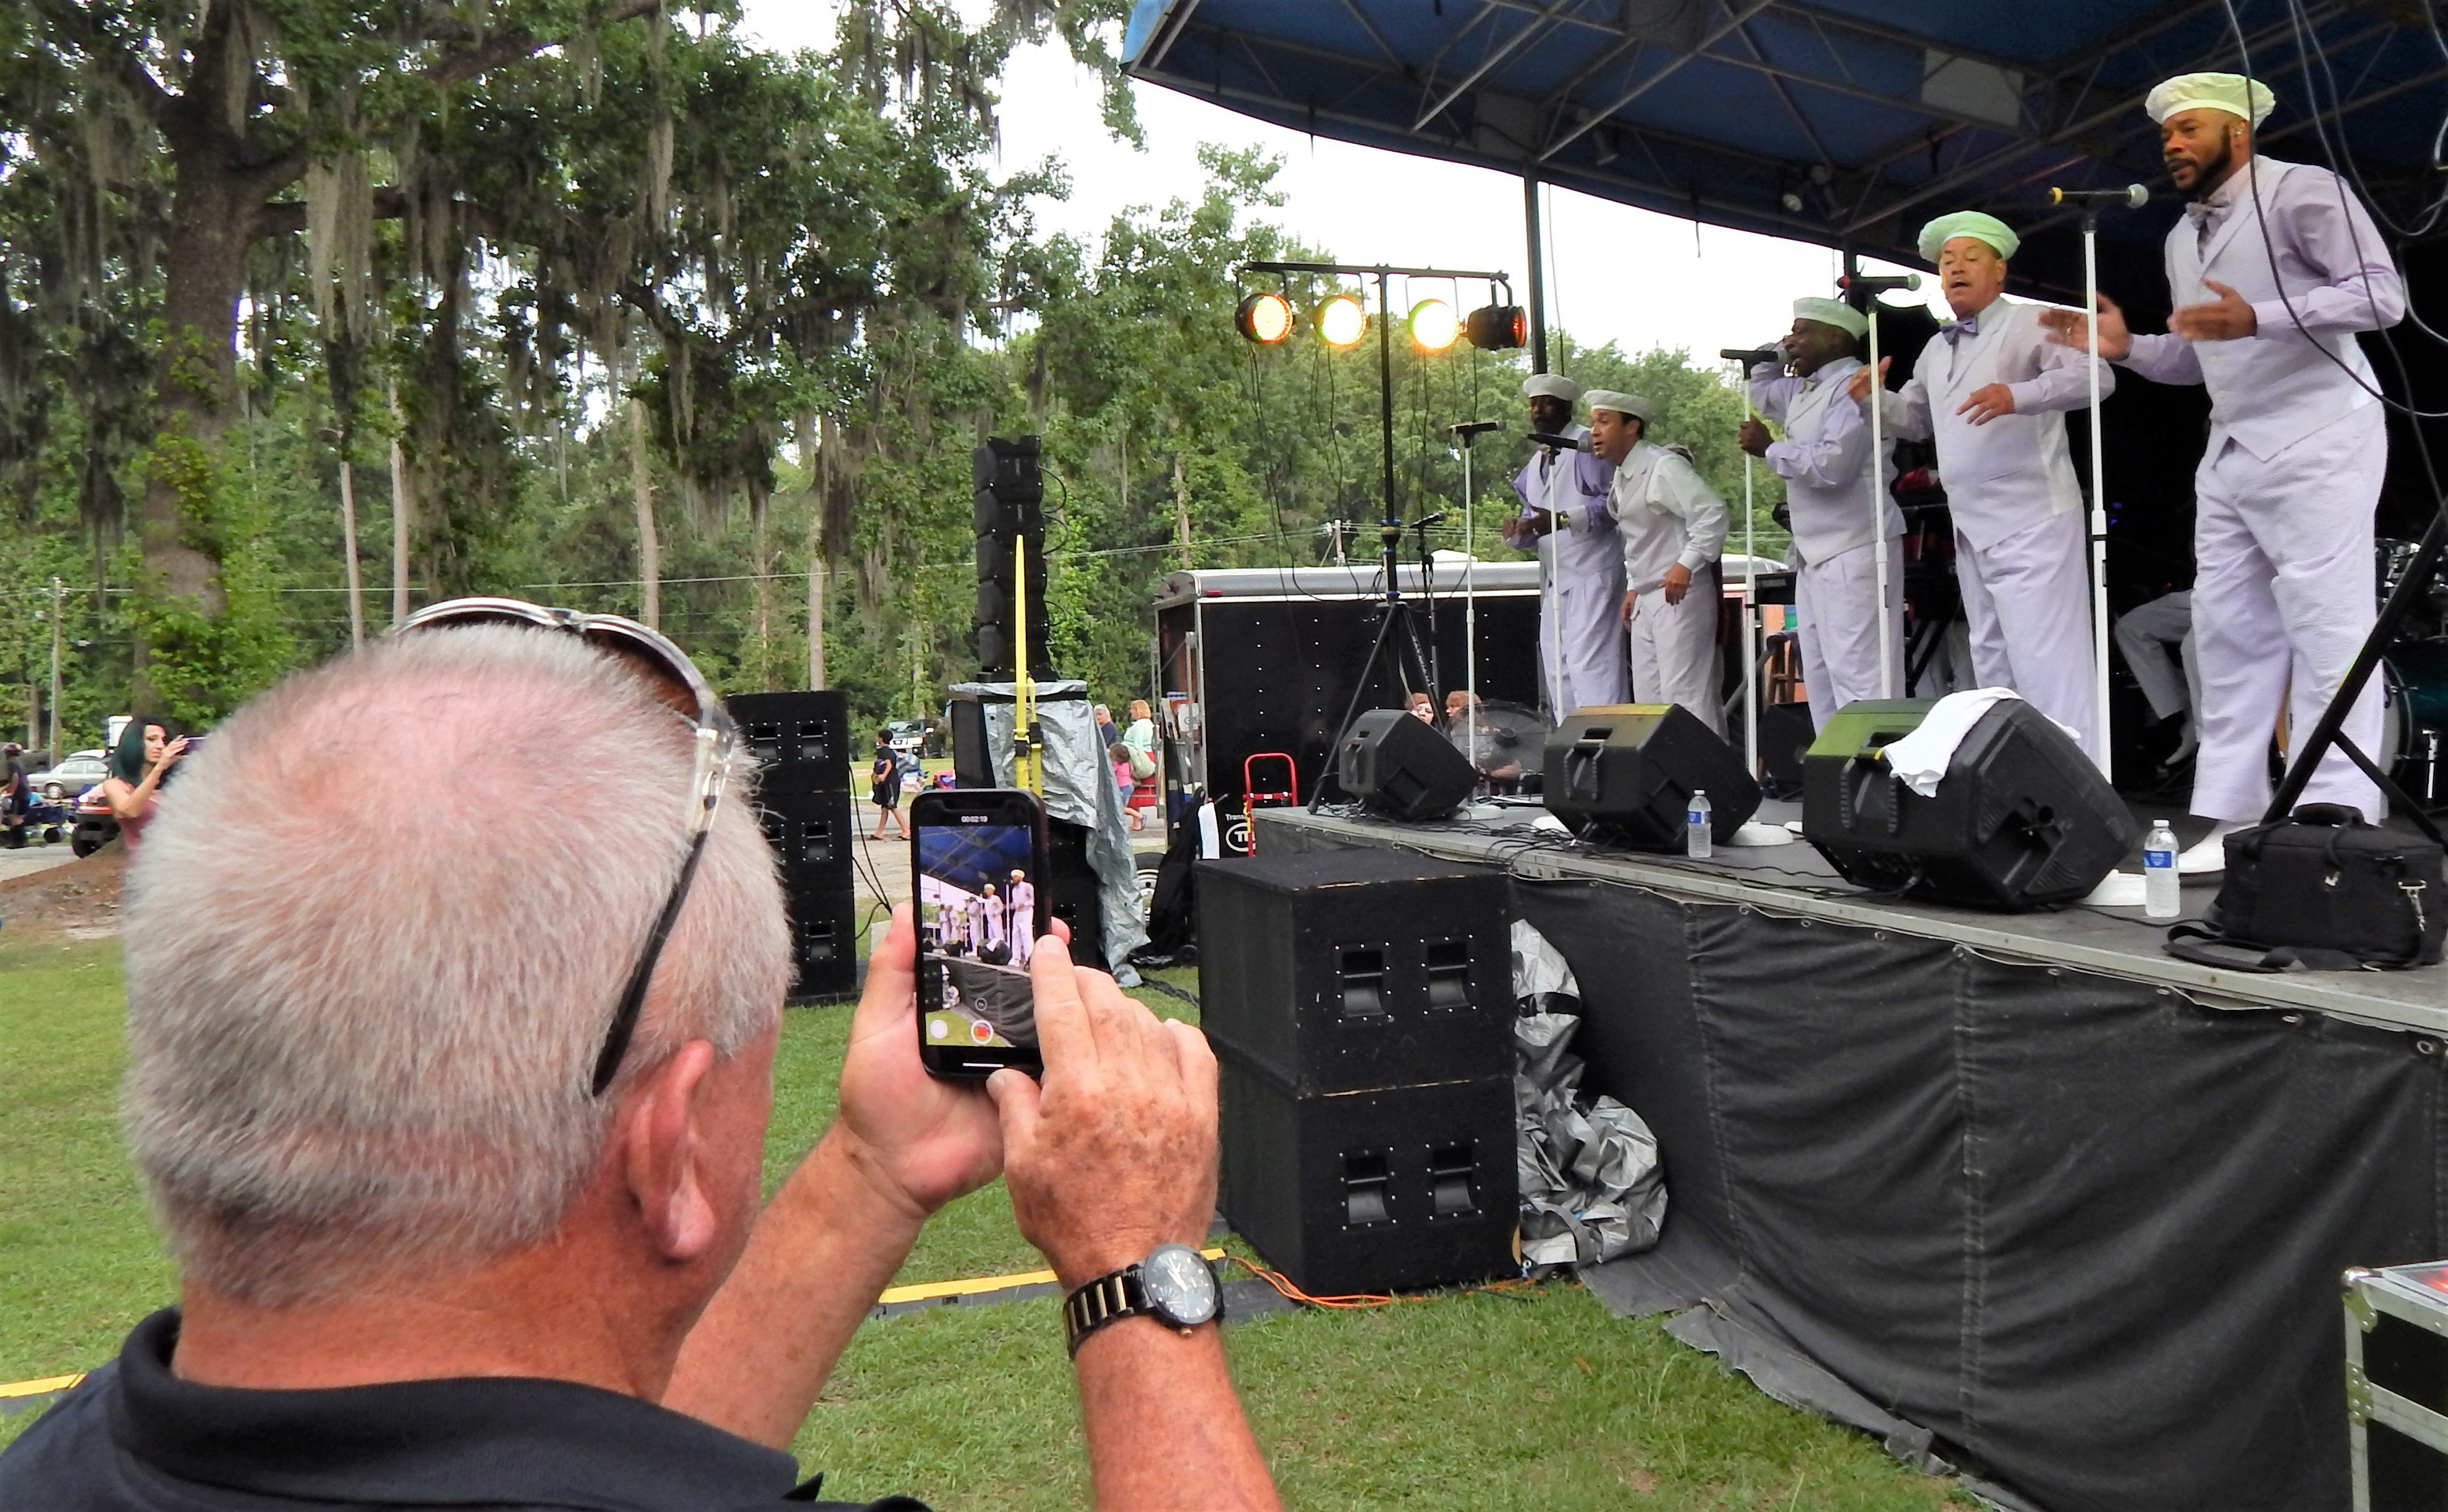 Several in the audience captured photos and videos of the Tams onstage. Photo by Mark Swendra